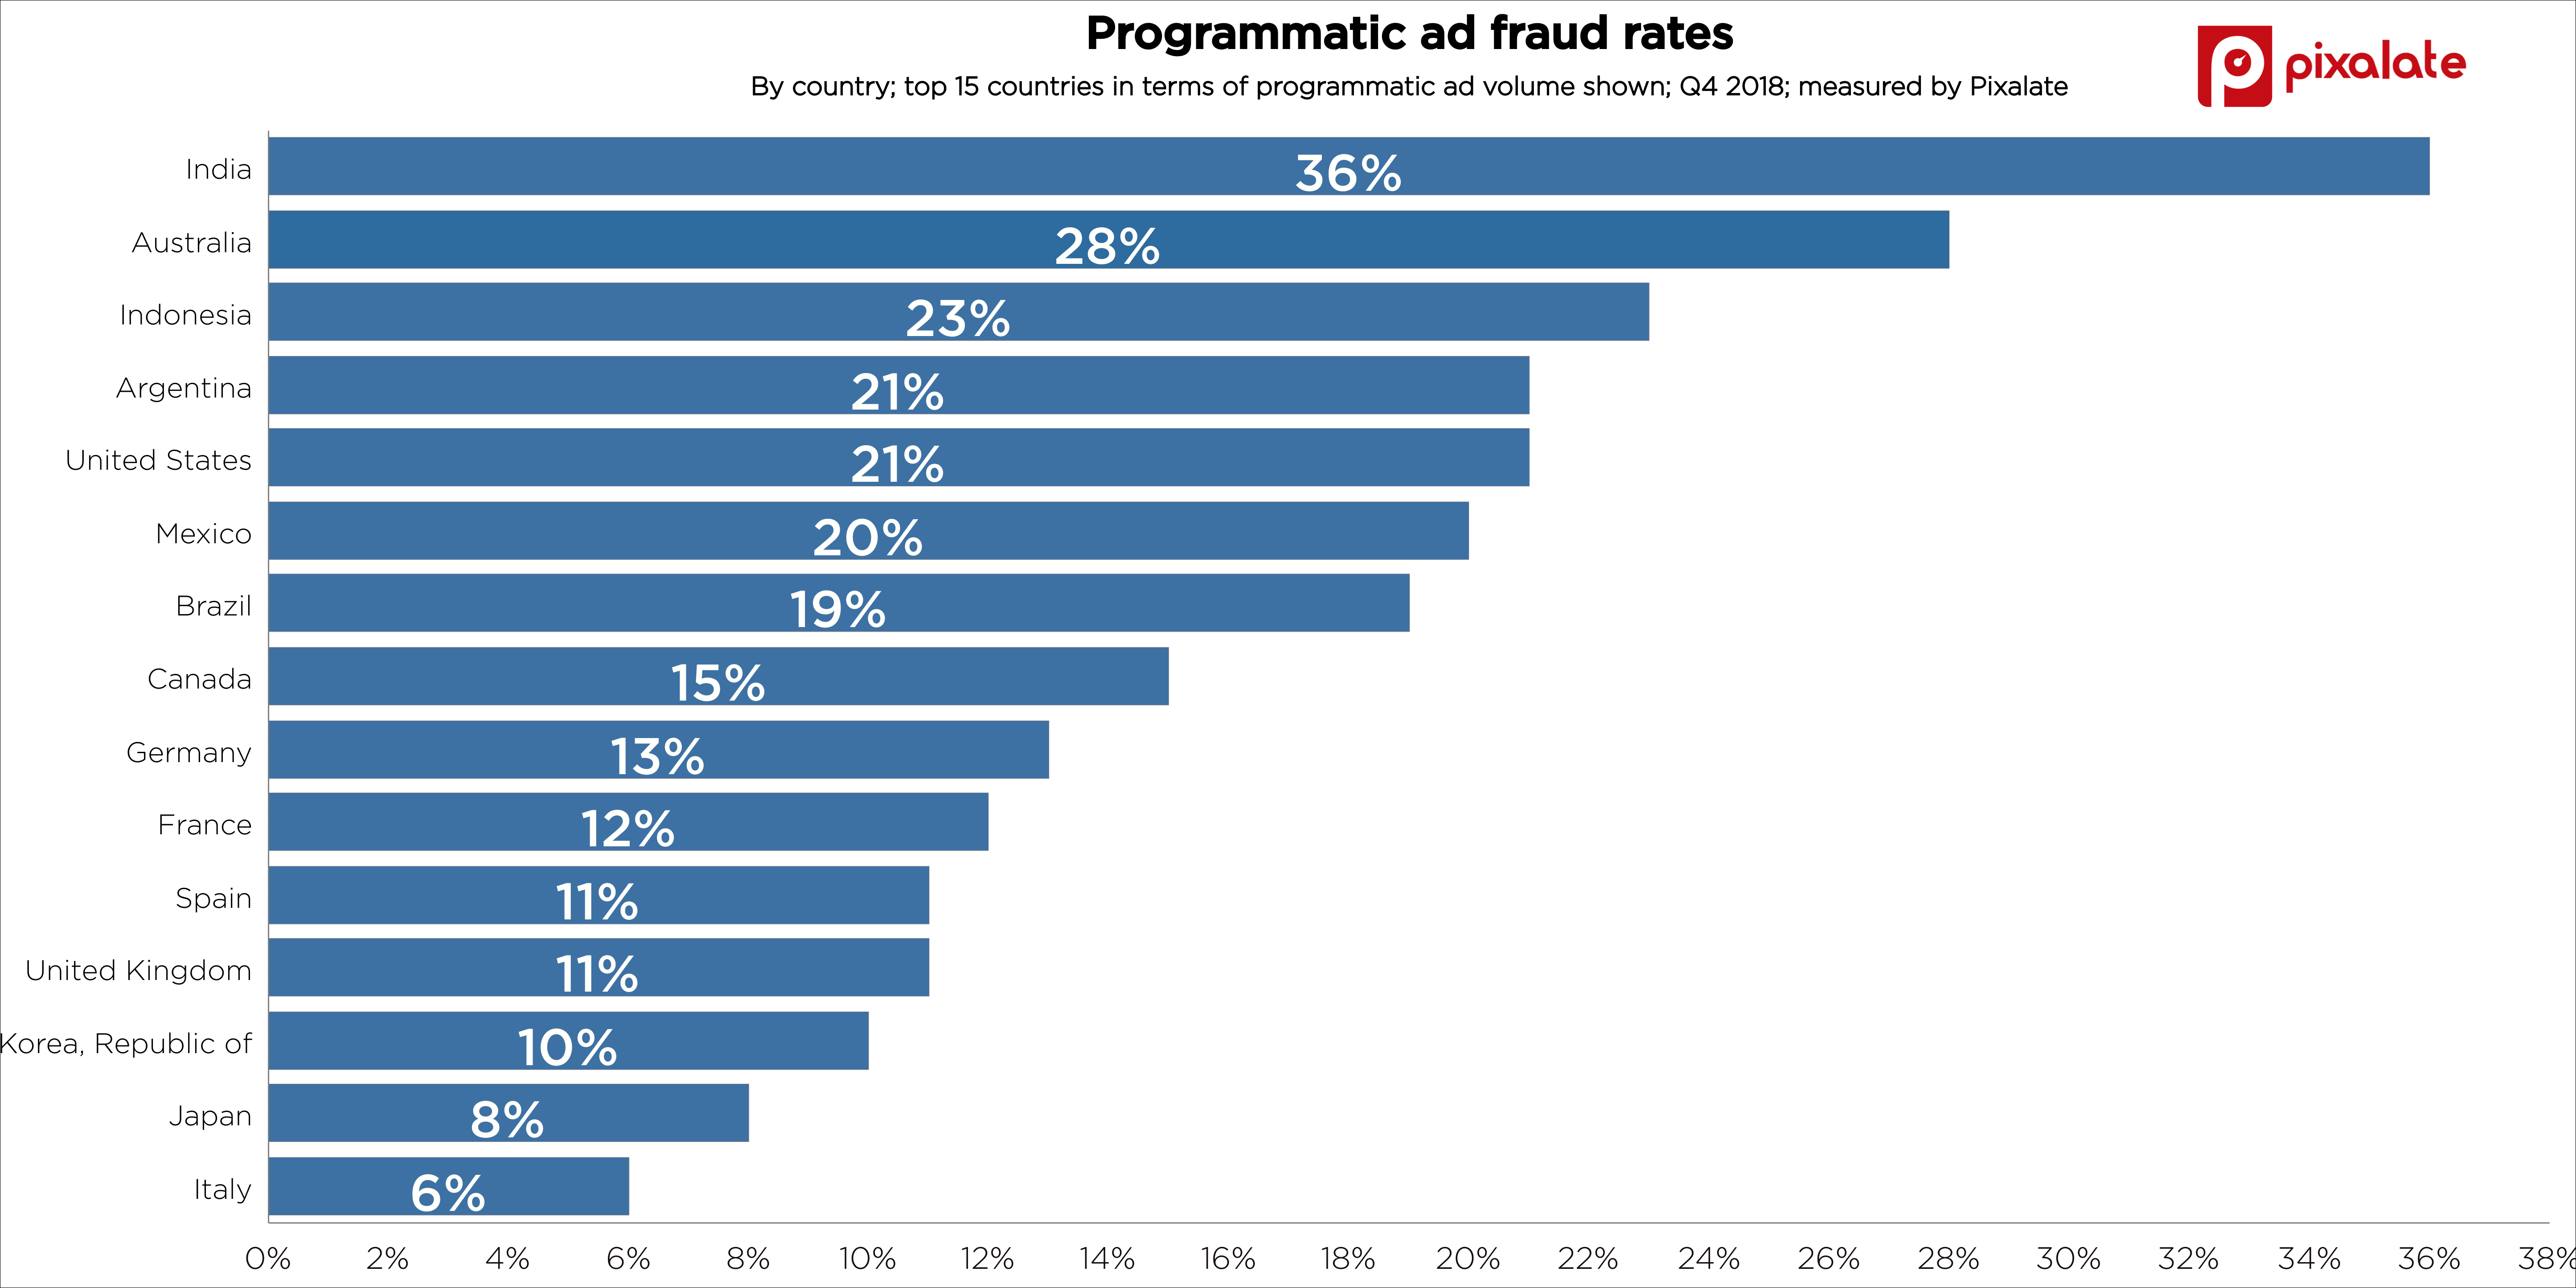 ad-fraud-invalid-traffic-ivt-by-country-q4-2018